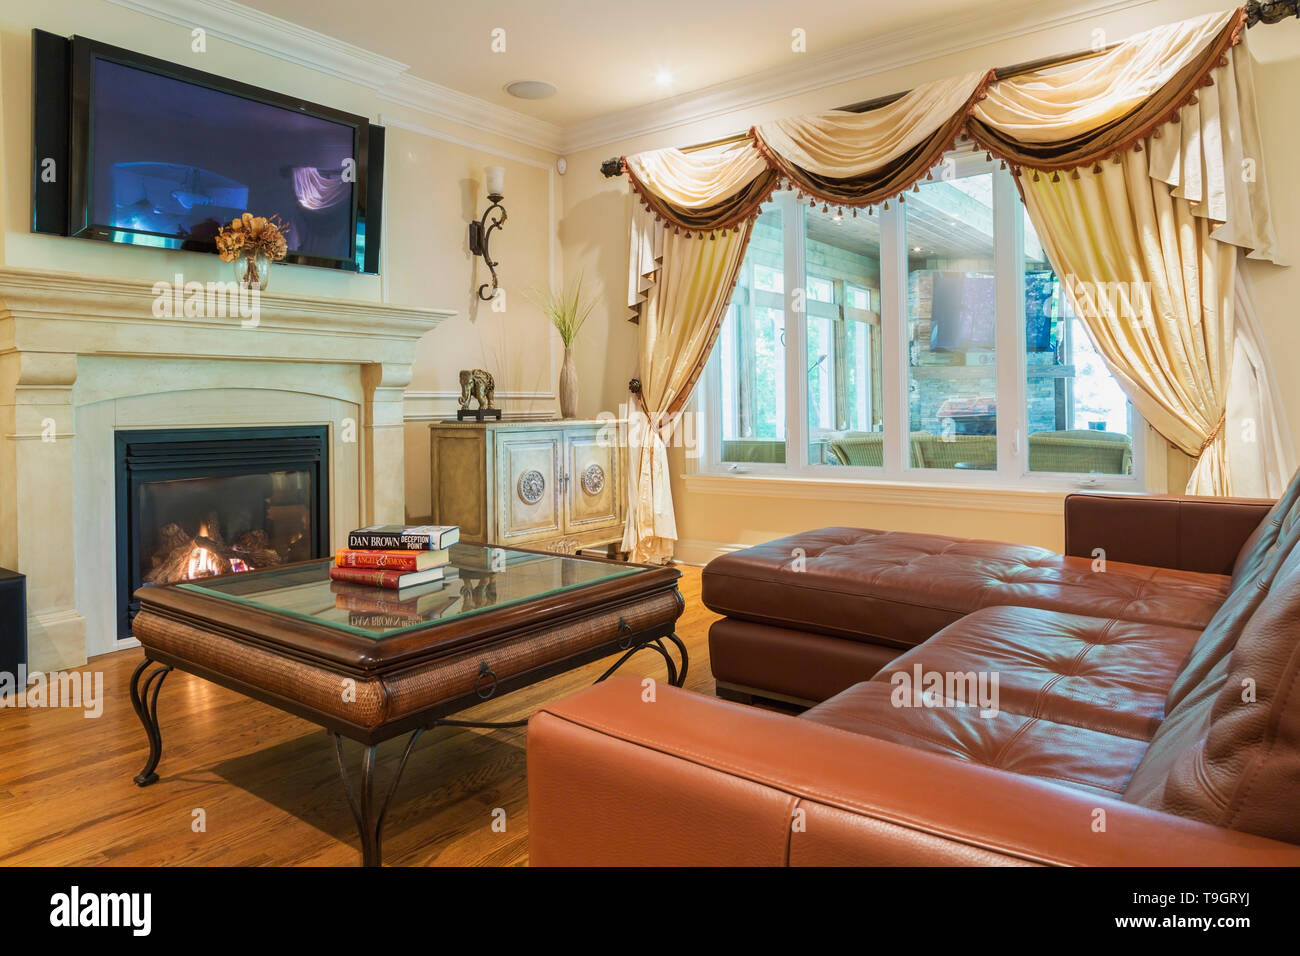 Picture of: Reddish Brown L Shaped Leather Sectional Sofa And Glass Top Coffee Table In Living Room With Gas Fireplace Inside A Luxurious Residential Home Quebec Canada This Image Is Property Released Cupr0353 Stock Photo